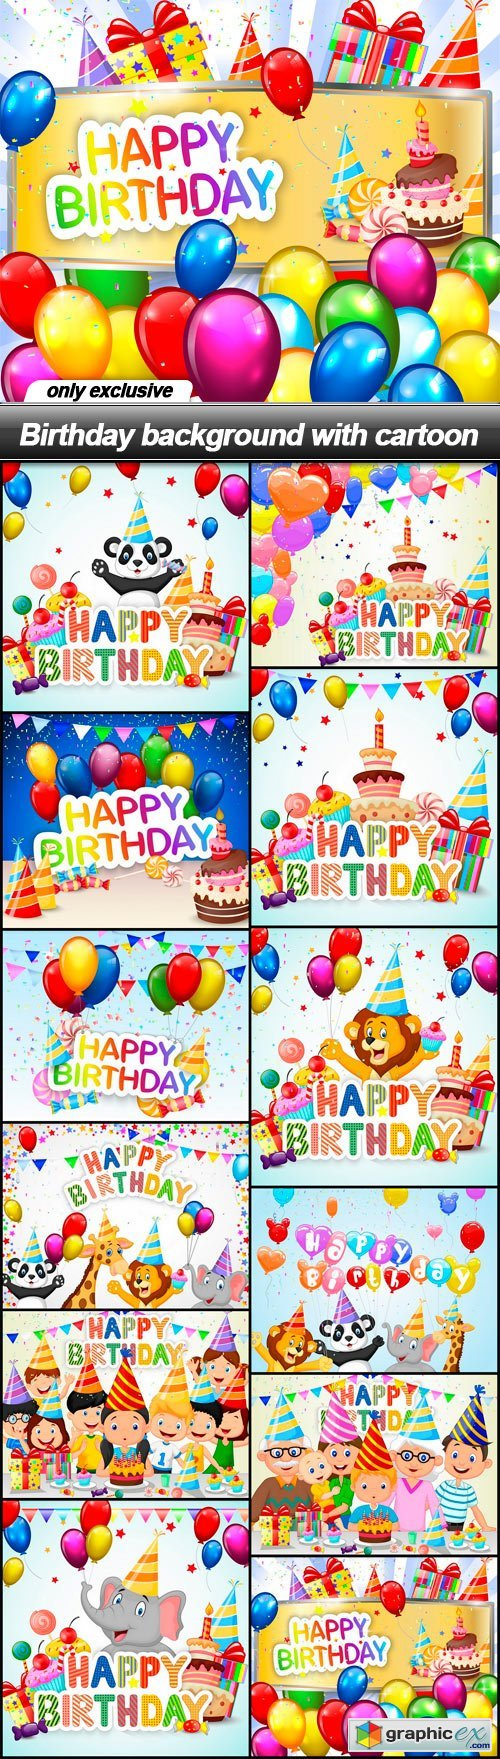 Birthday background with cartoon - 12 EPS